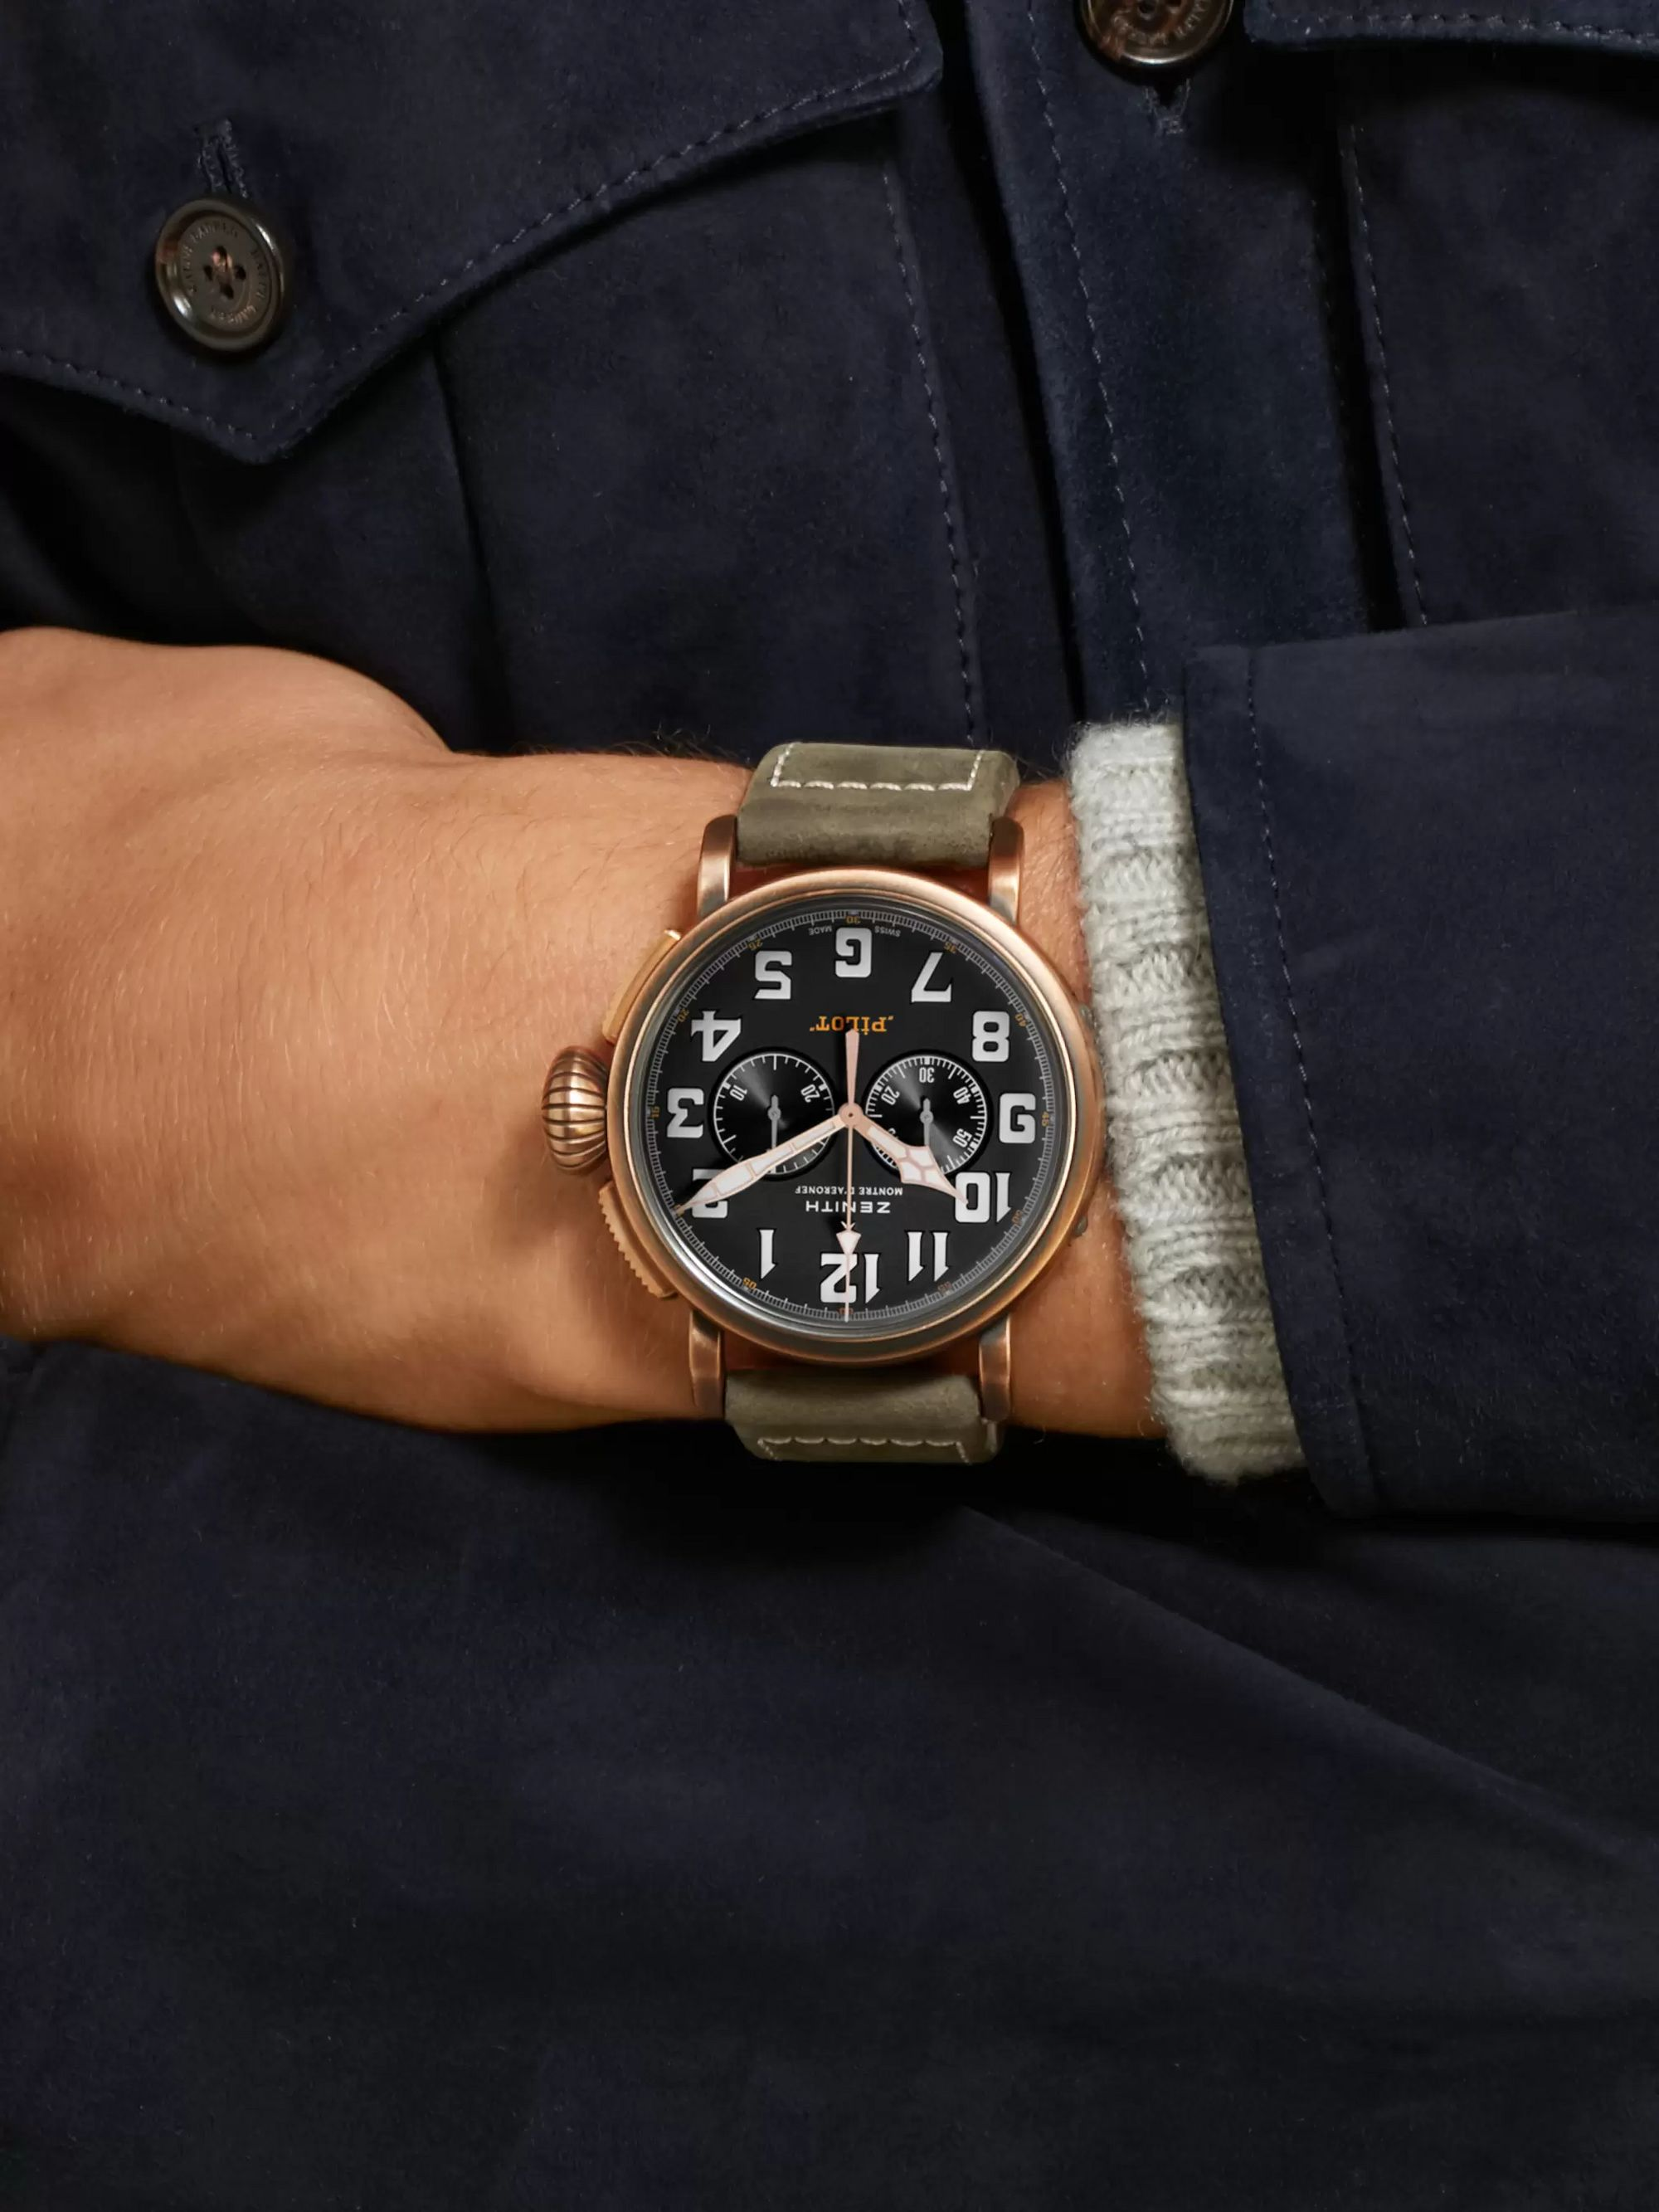 Zenith Pilot Type 20 Extra Special Automatic Chronograph 45mm Bronze and Nubuck Watch, Ref. No. 29.2430.4069/21.C800